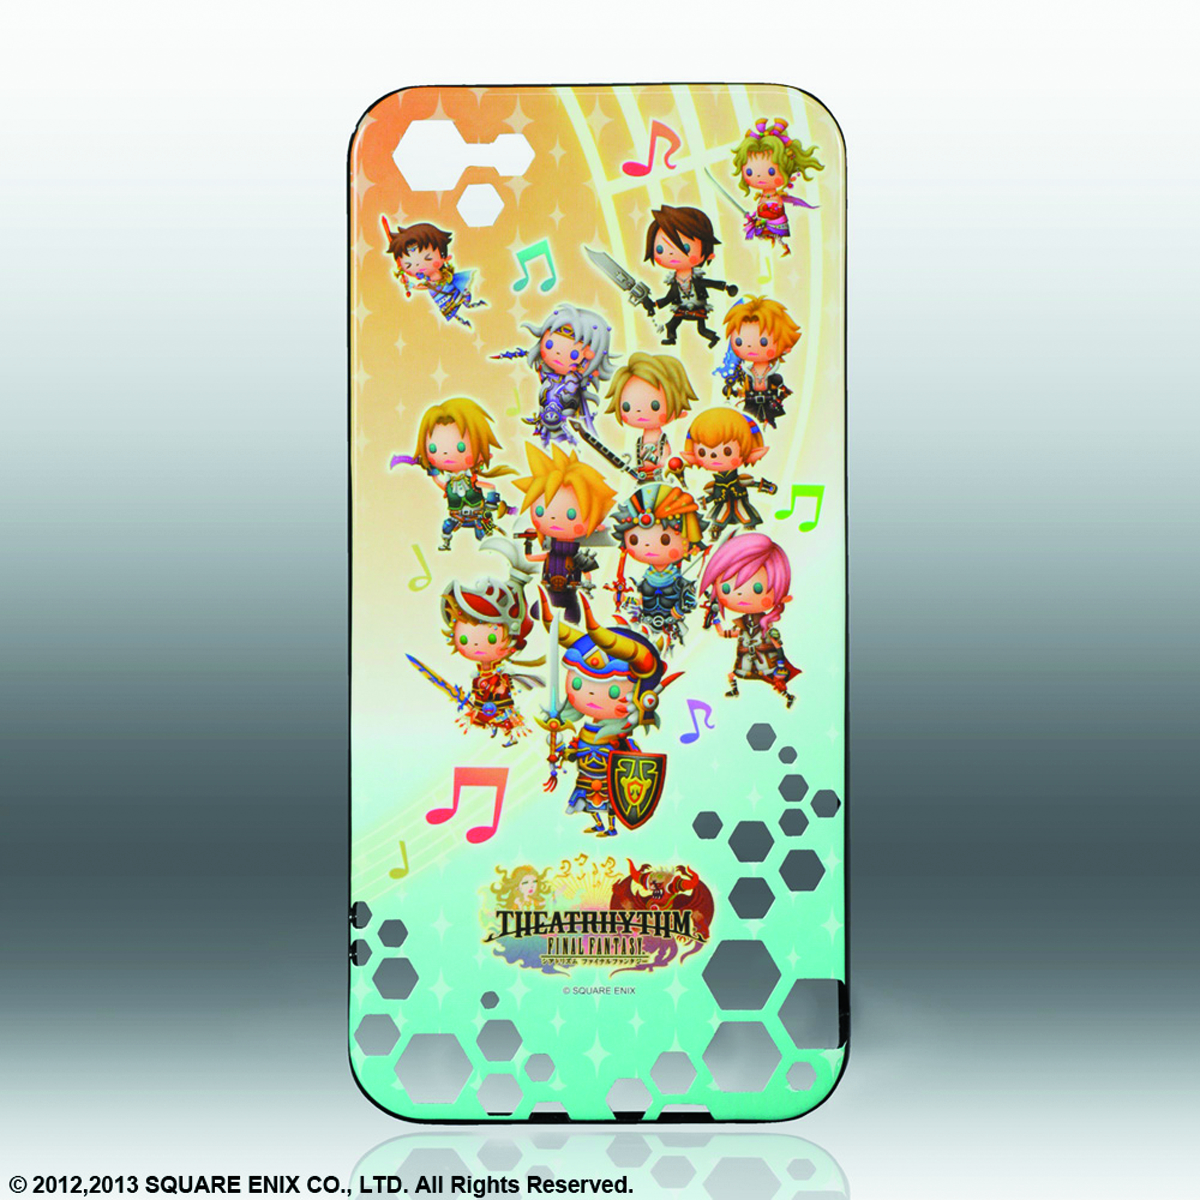 THEATRHYTHM FINAL FANTASY IPHONE 5 HARD CASE